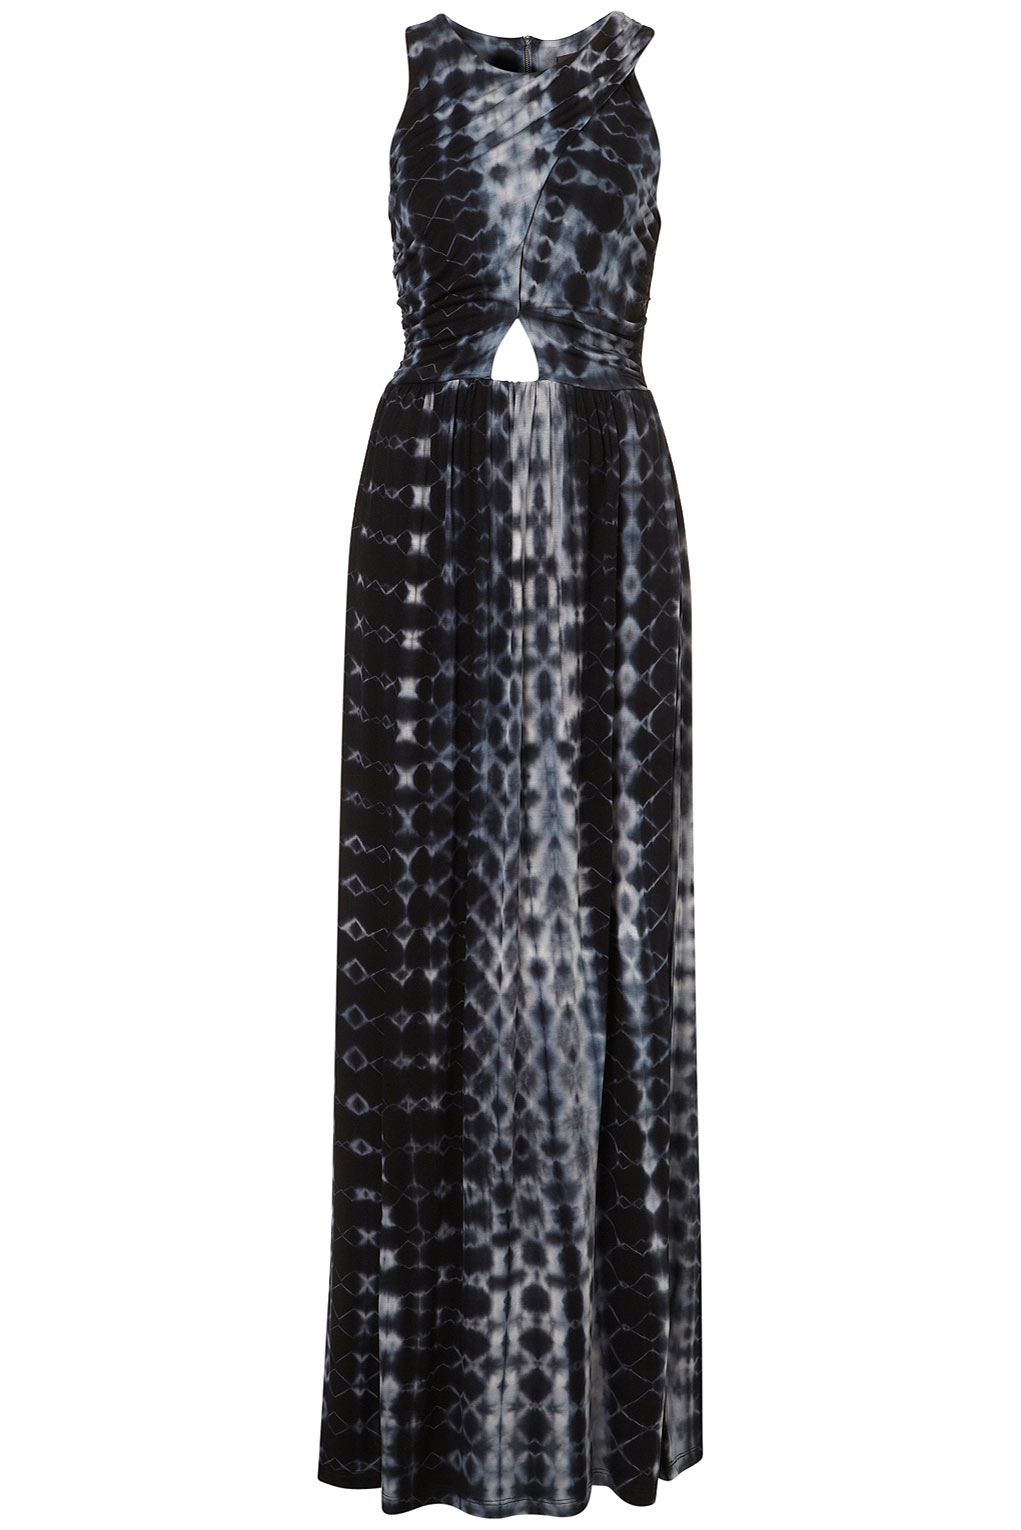 Topshop Tie Dye Maxi Dress In Black Lyst